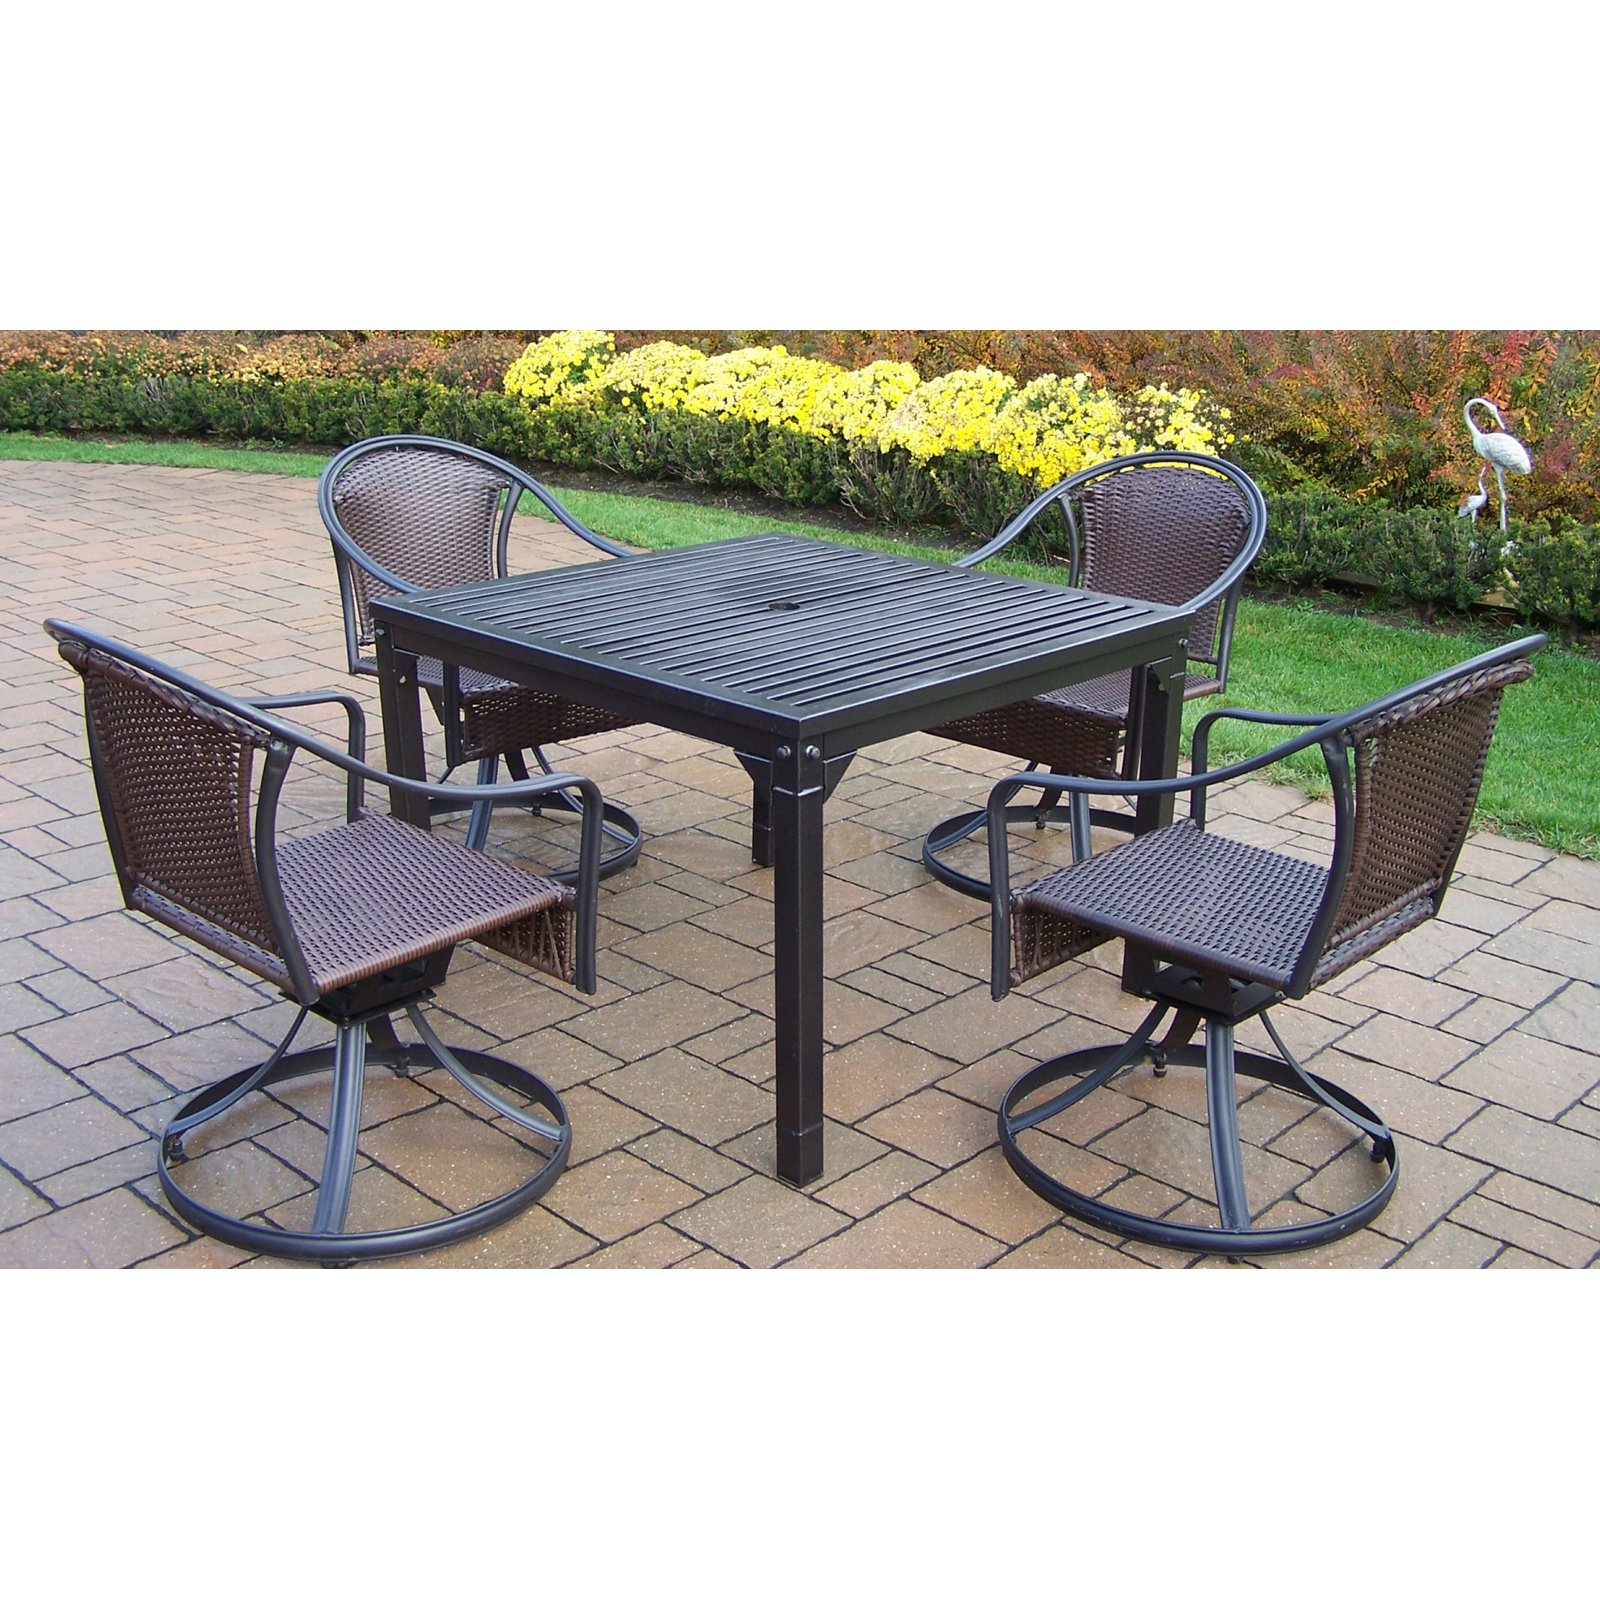 Oakland Living Rochester Tuscany 40 x 40 in. Swivel Patio Dining Set